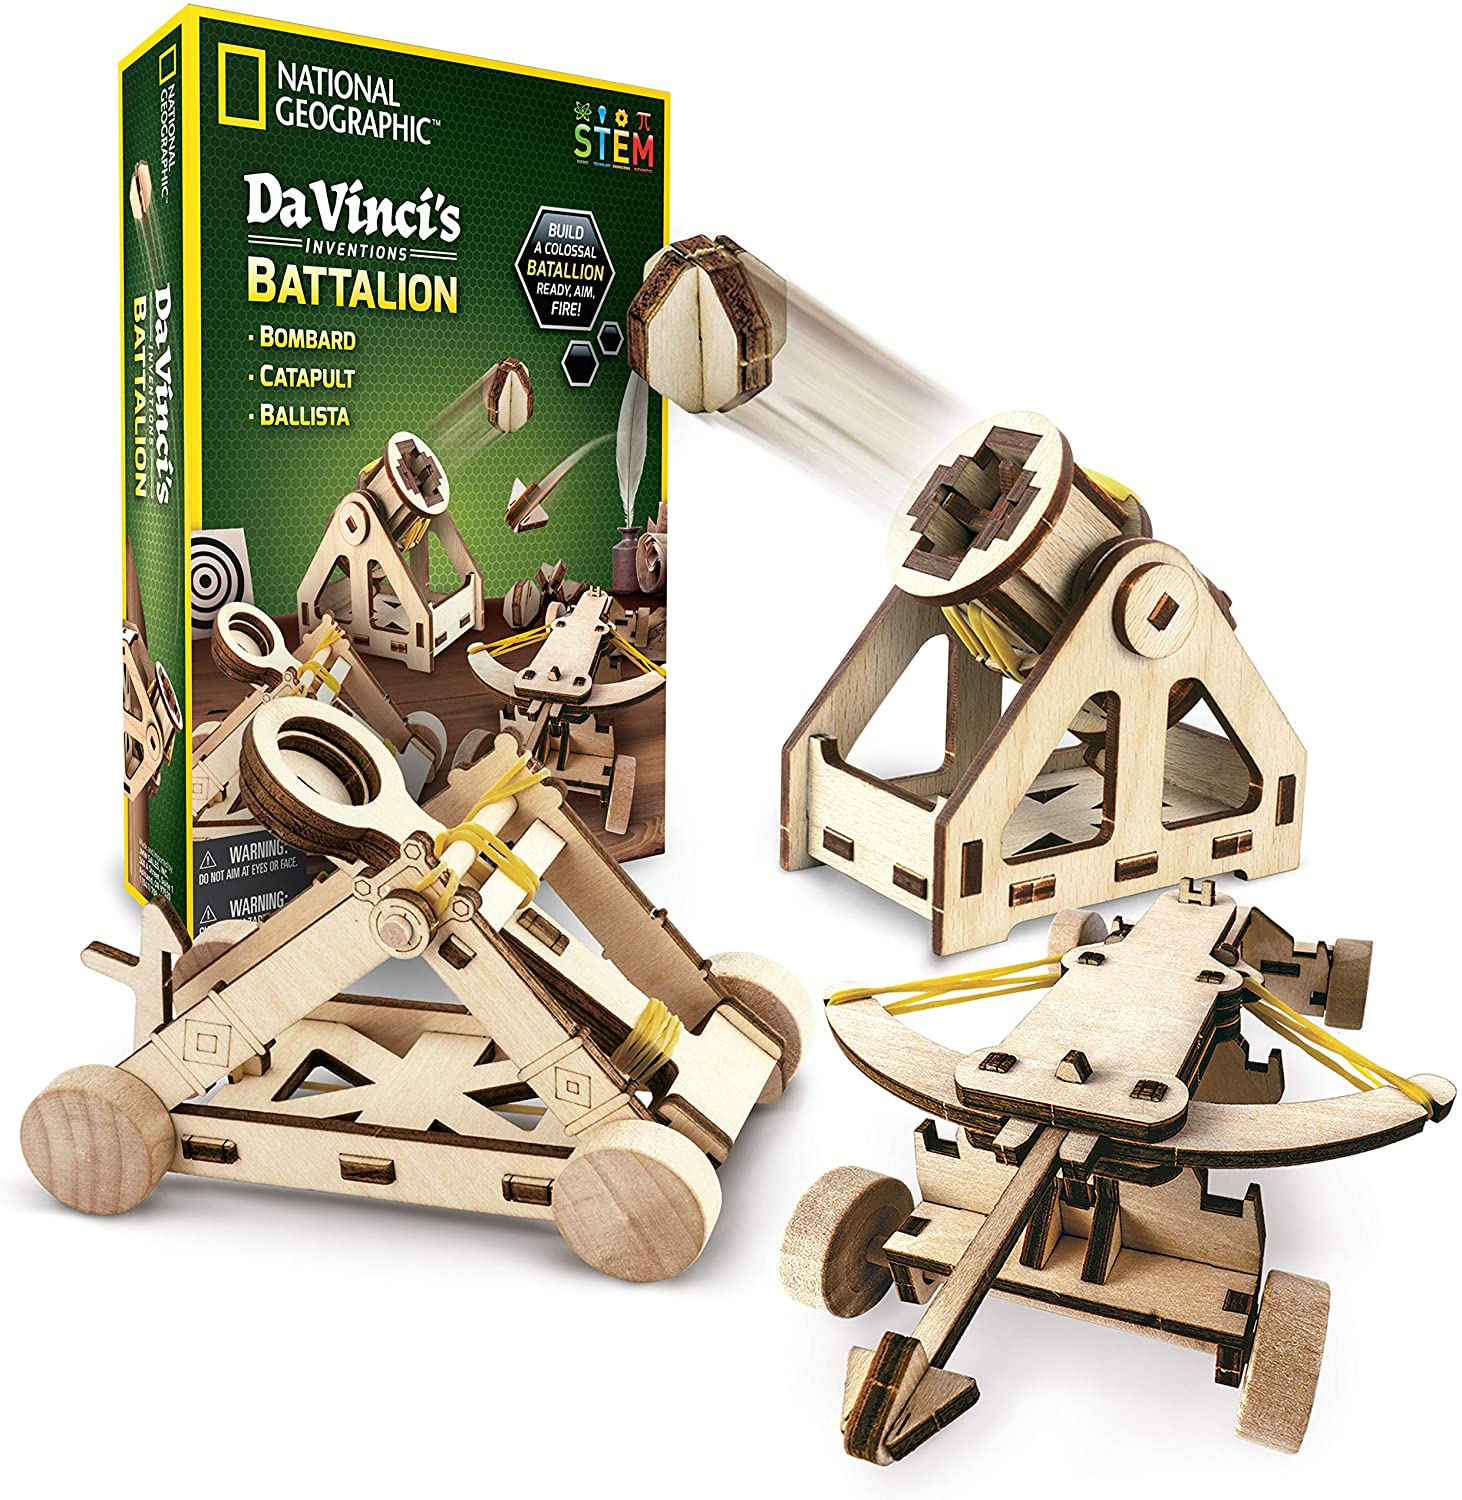 Amazon Com National Geographic Construction Model Kit Build 3 Wooden 3d Puzzle Models Learn About Da Vinci S Improved Designs Toys Games